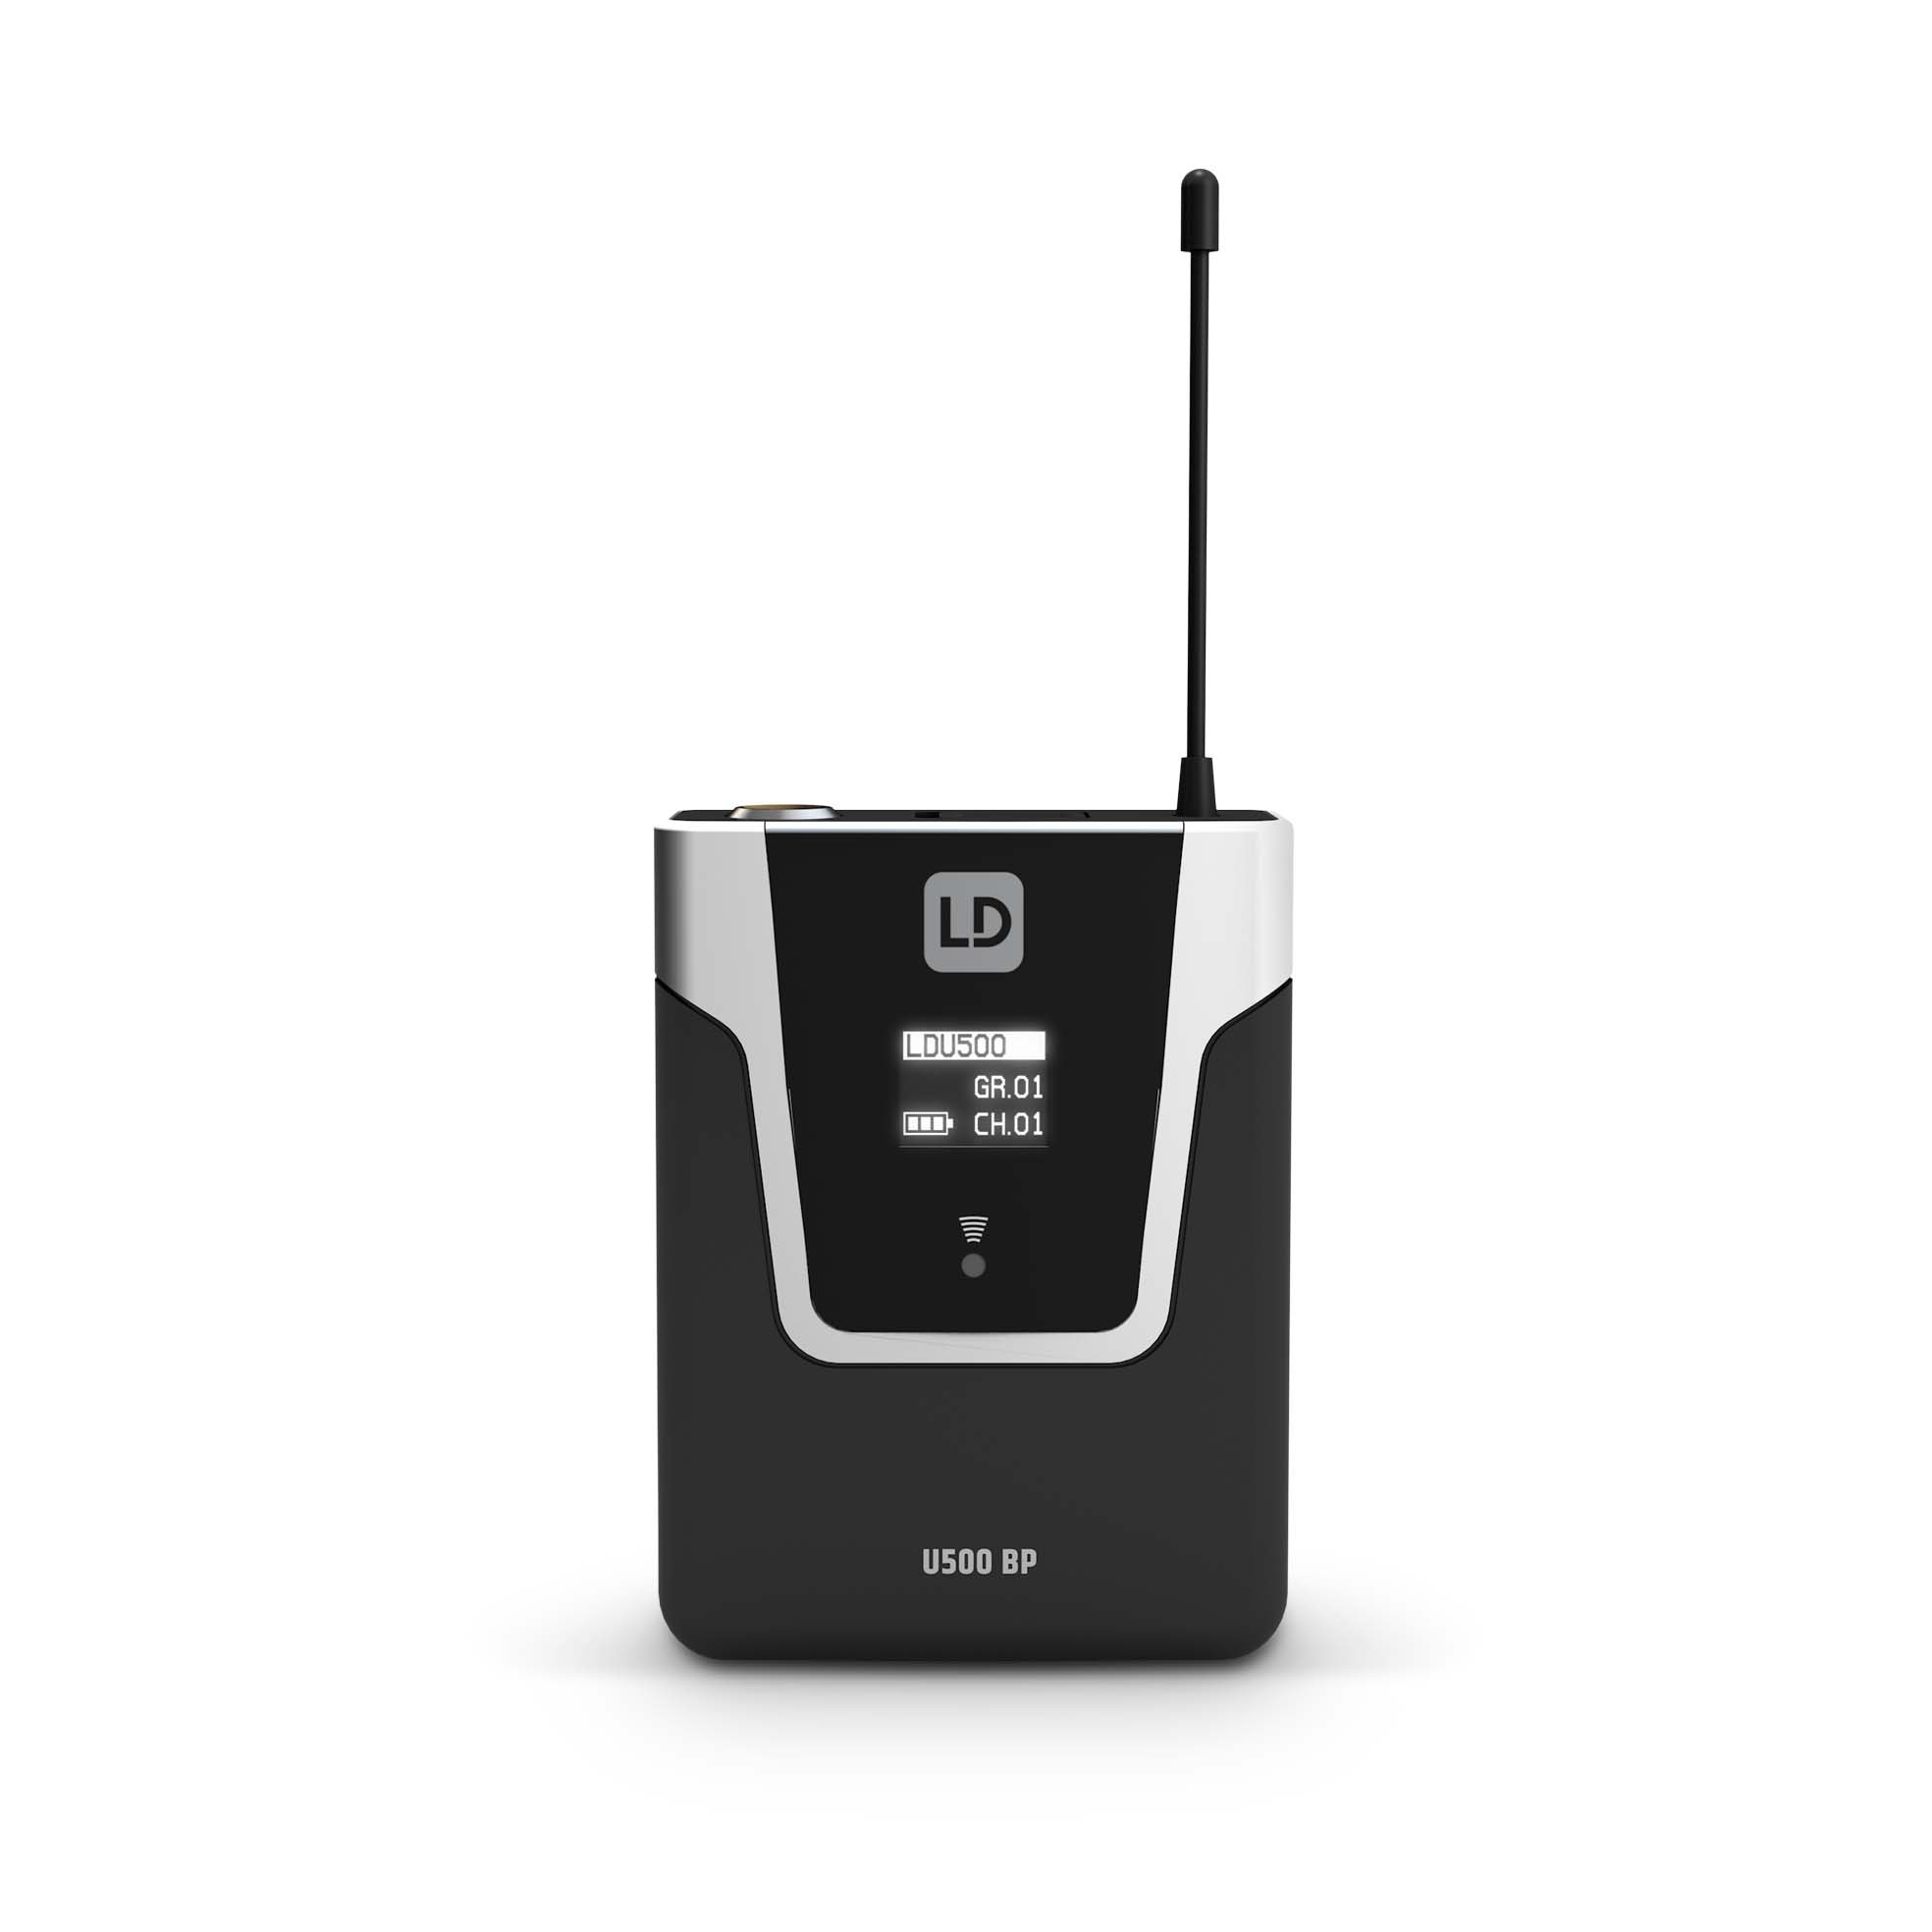 U518 HBH 2 Wireless Microphone System with Bodypack, Headset and Dynamic Handheld Microphone